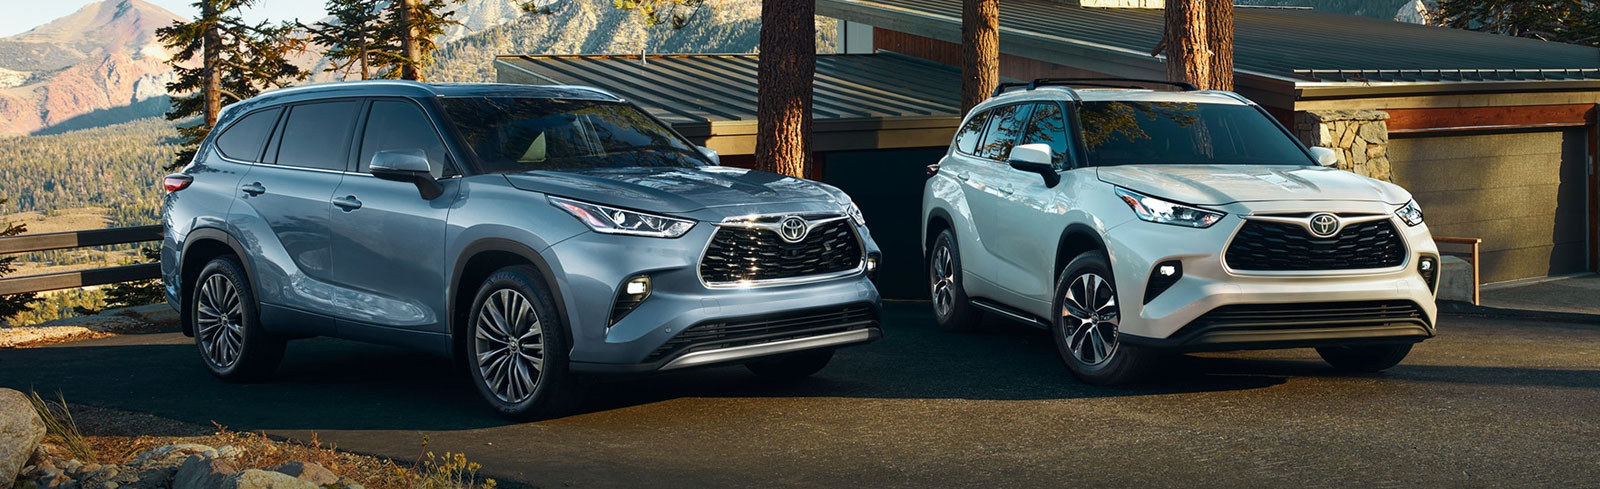 The All-New 2020 Toyota Highlander is Now Available in Cleveland, OH